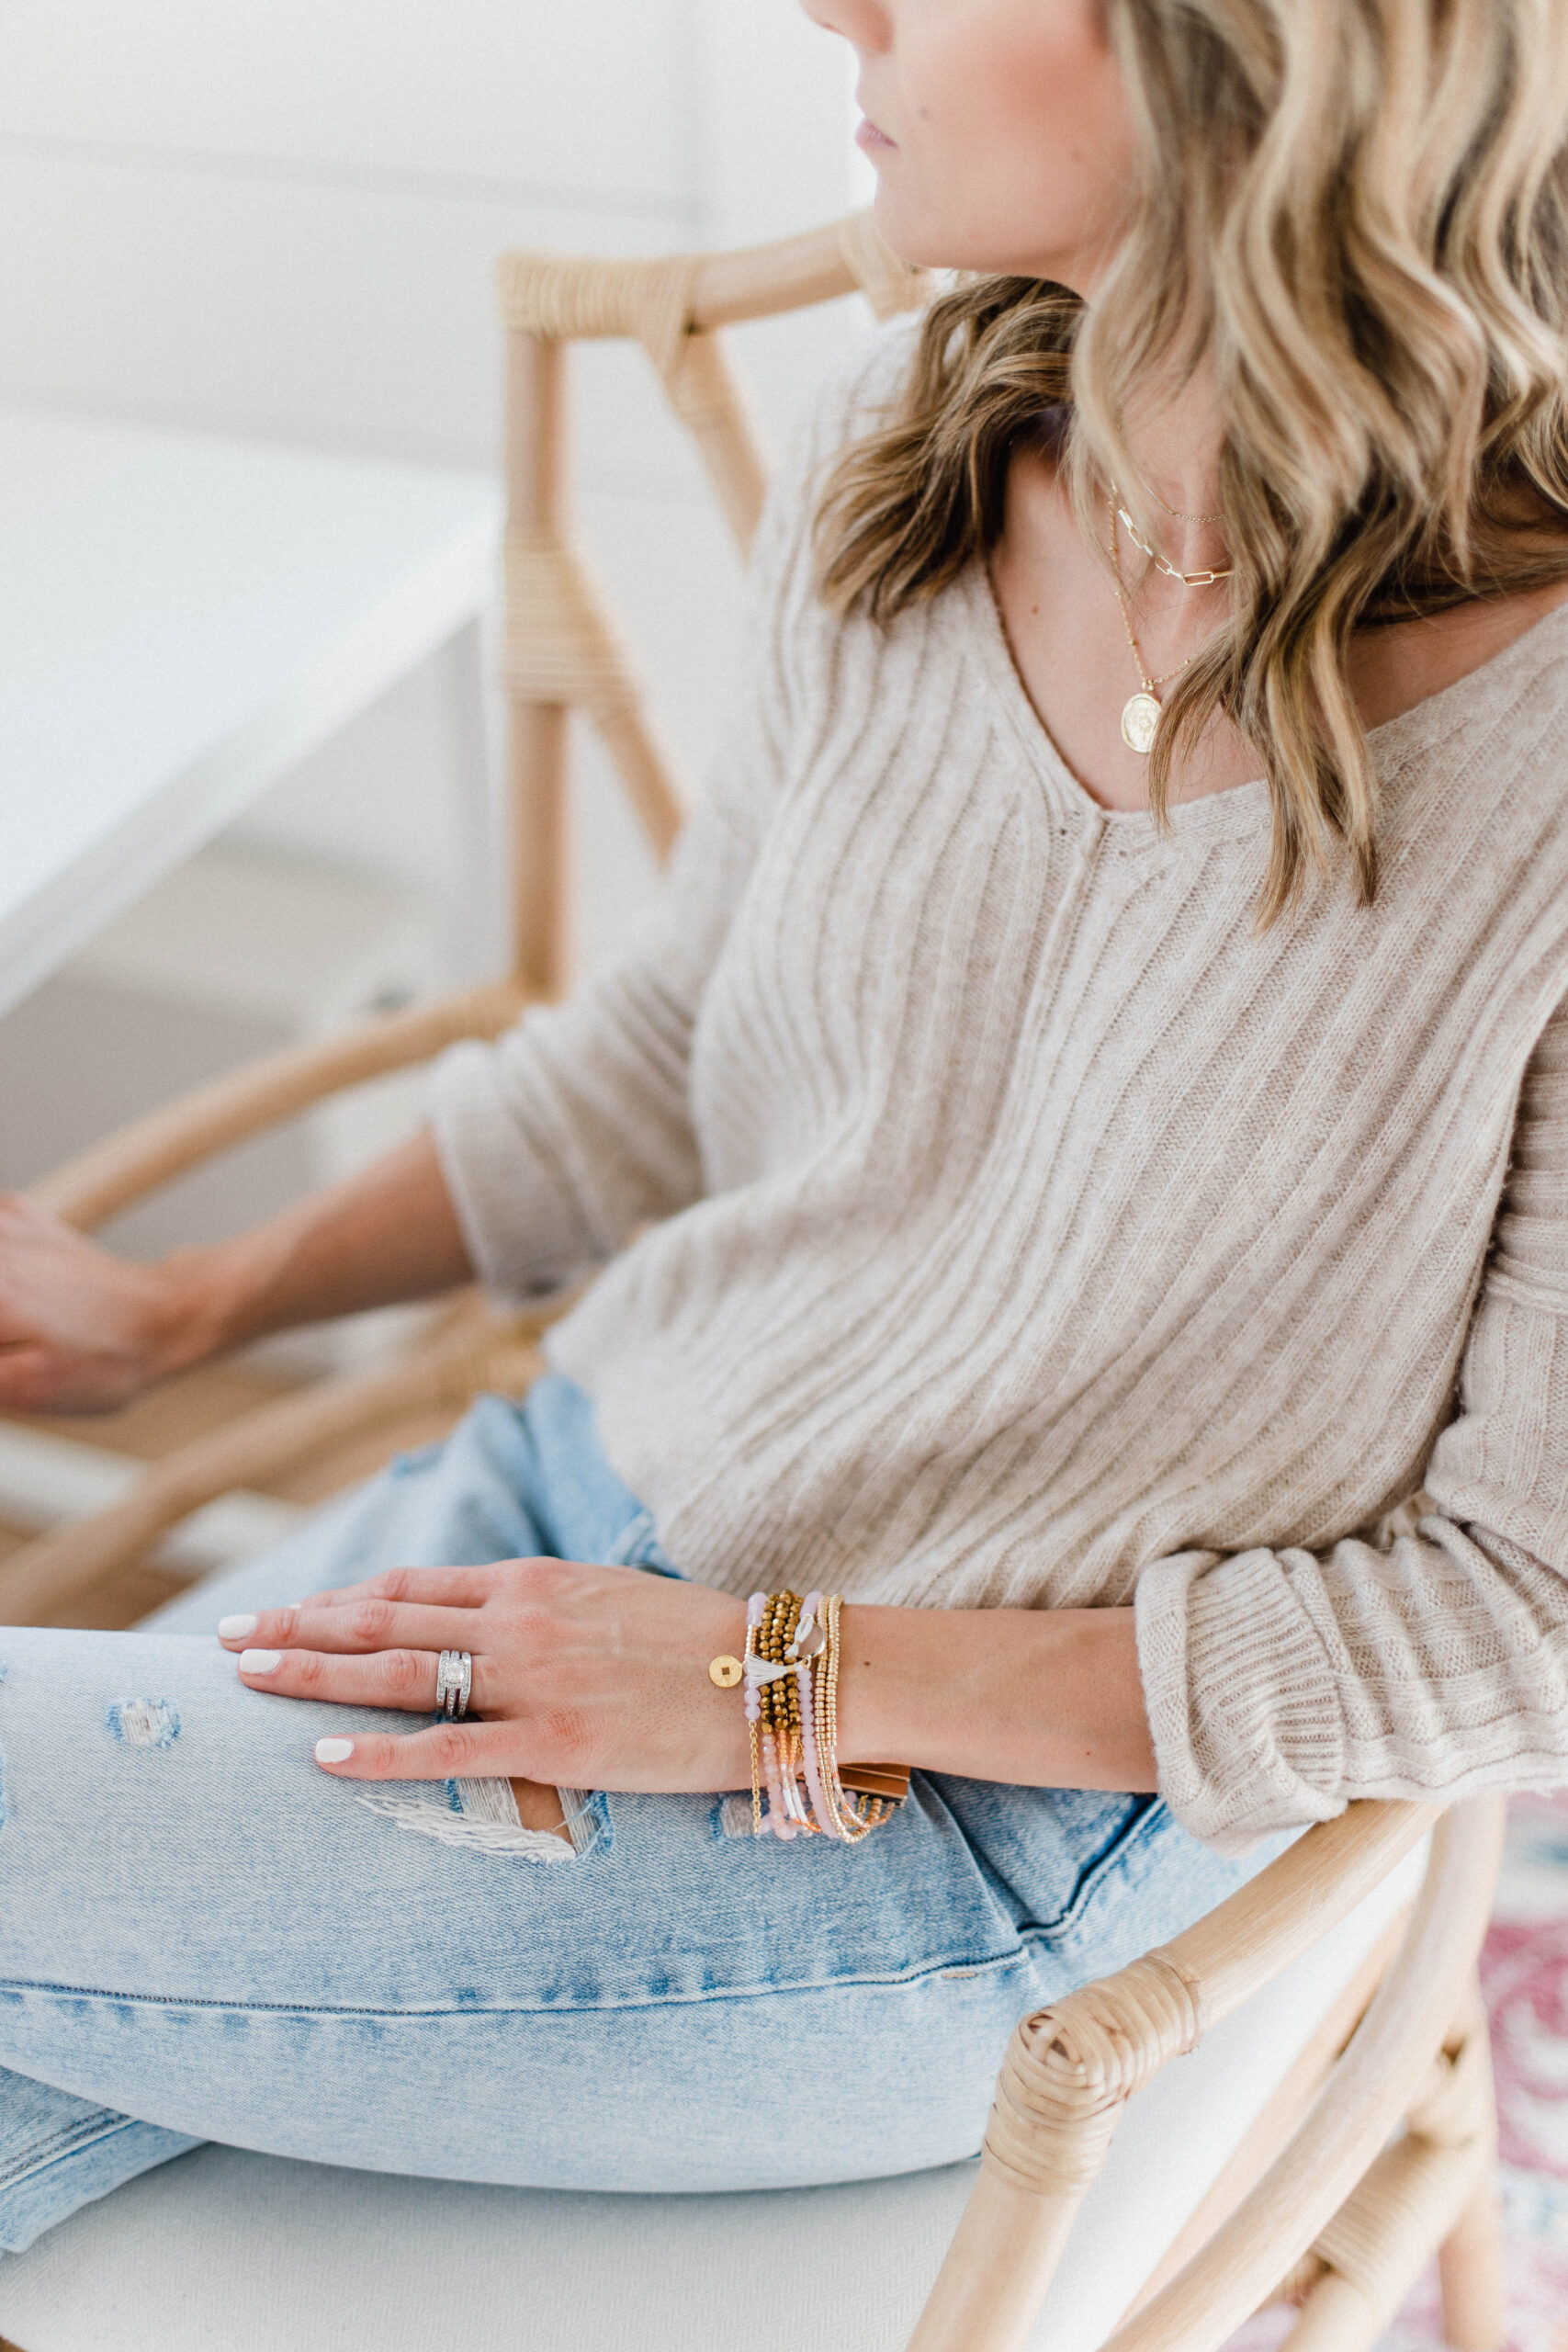 Connecticut life and style blogger Lauren McBride shares her Victoria Emerson St. Patrick's Day sale picks, including boho cuffs, wraps, and more.